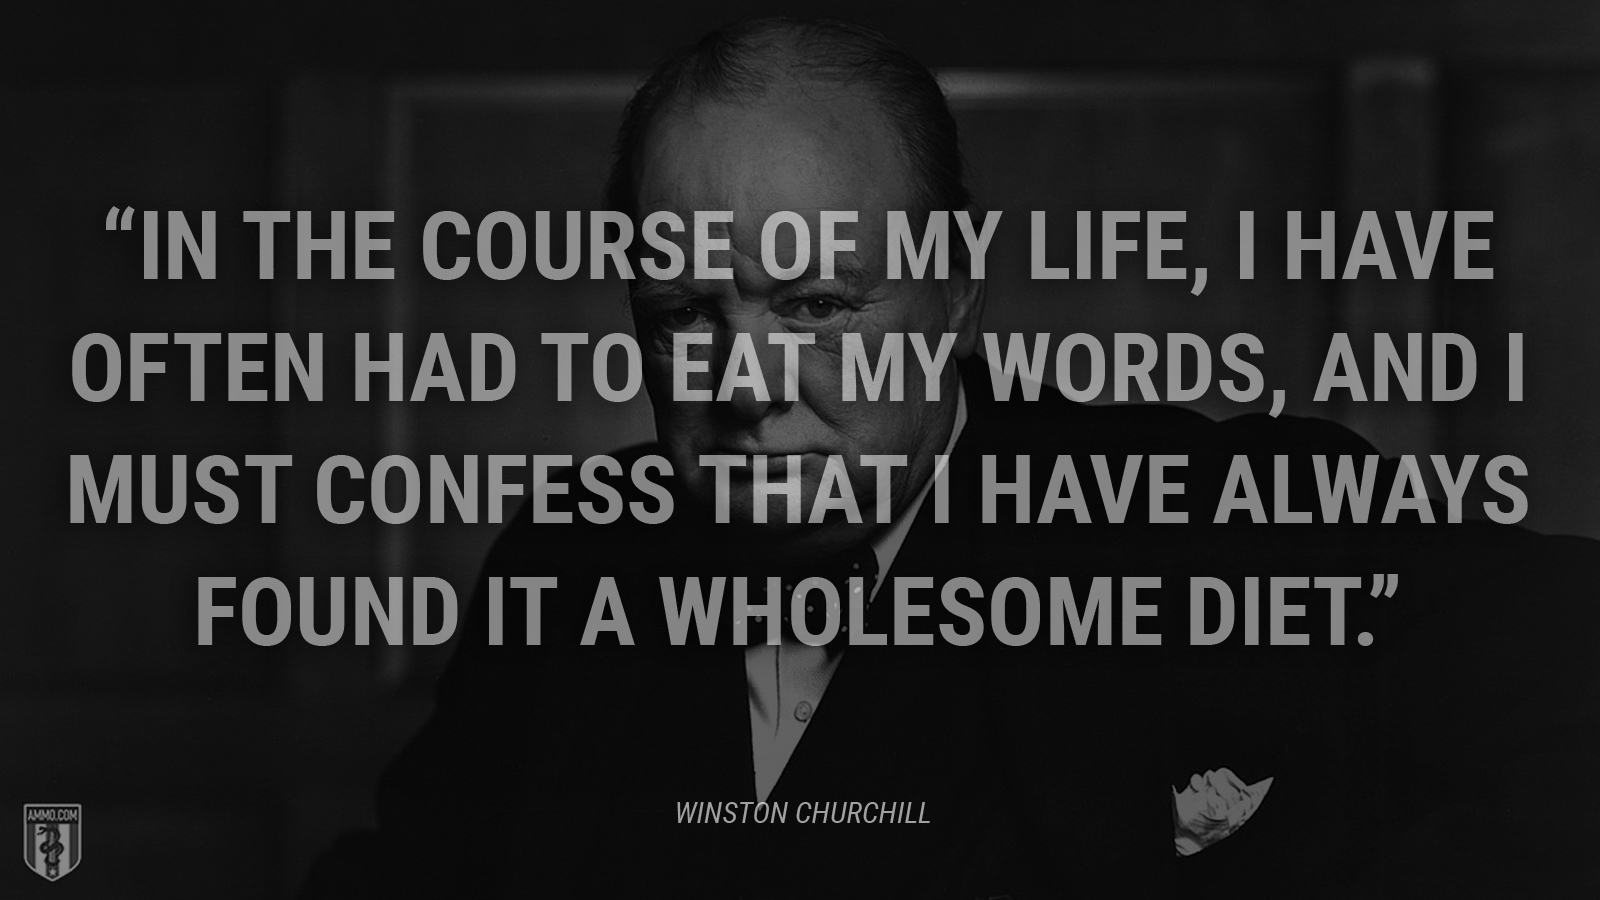 """In the course of my life, I have often had to eat my words, and I must confess that I have always found it a wholesome diet."" - Winston Churchill"